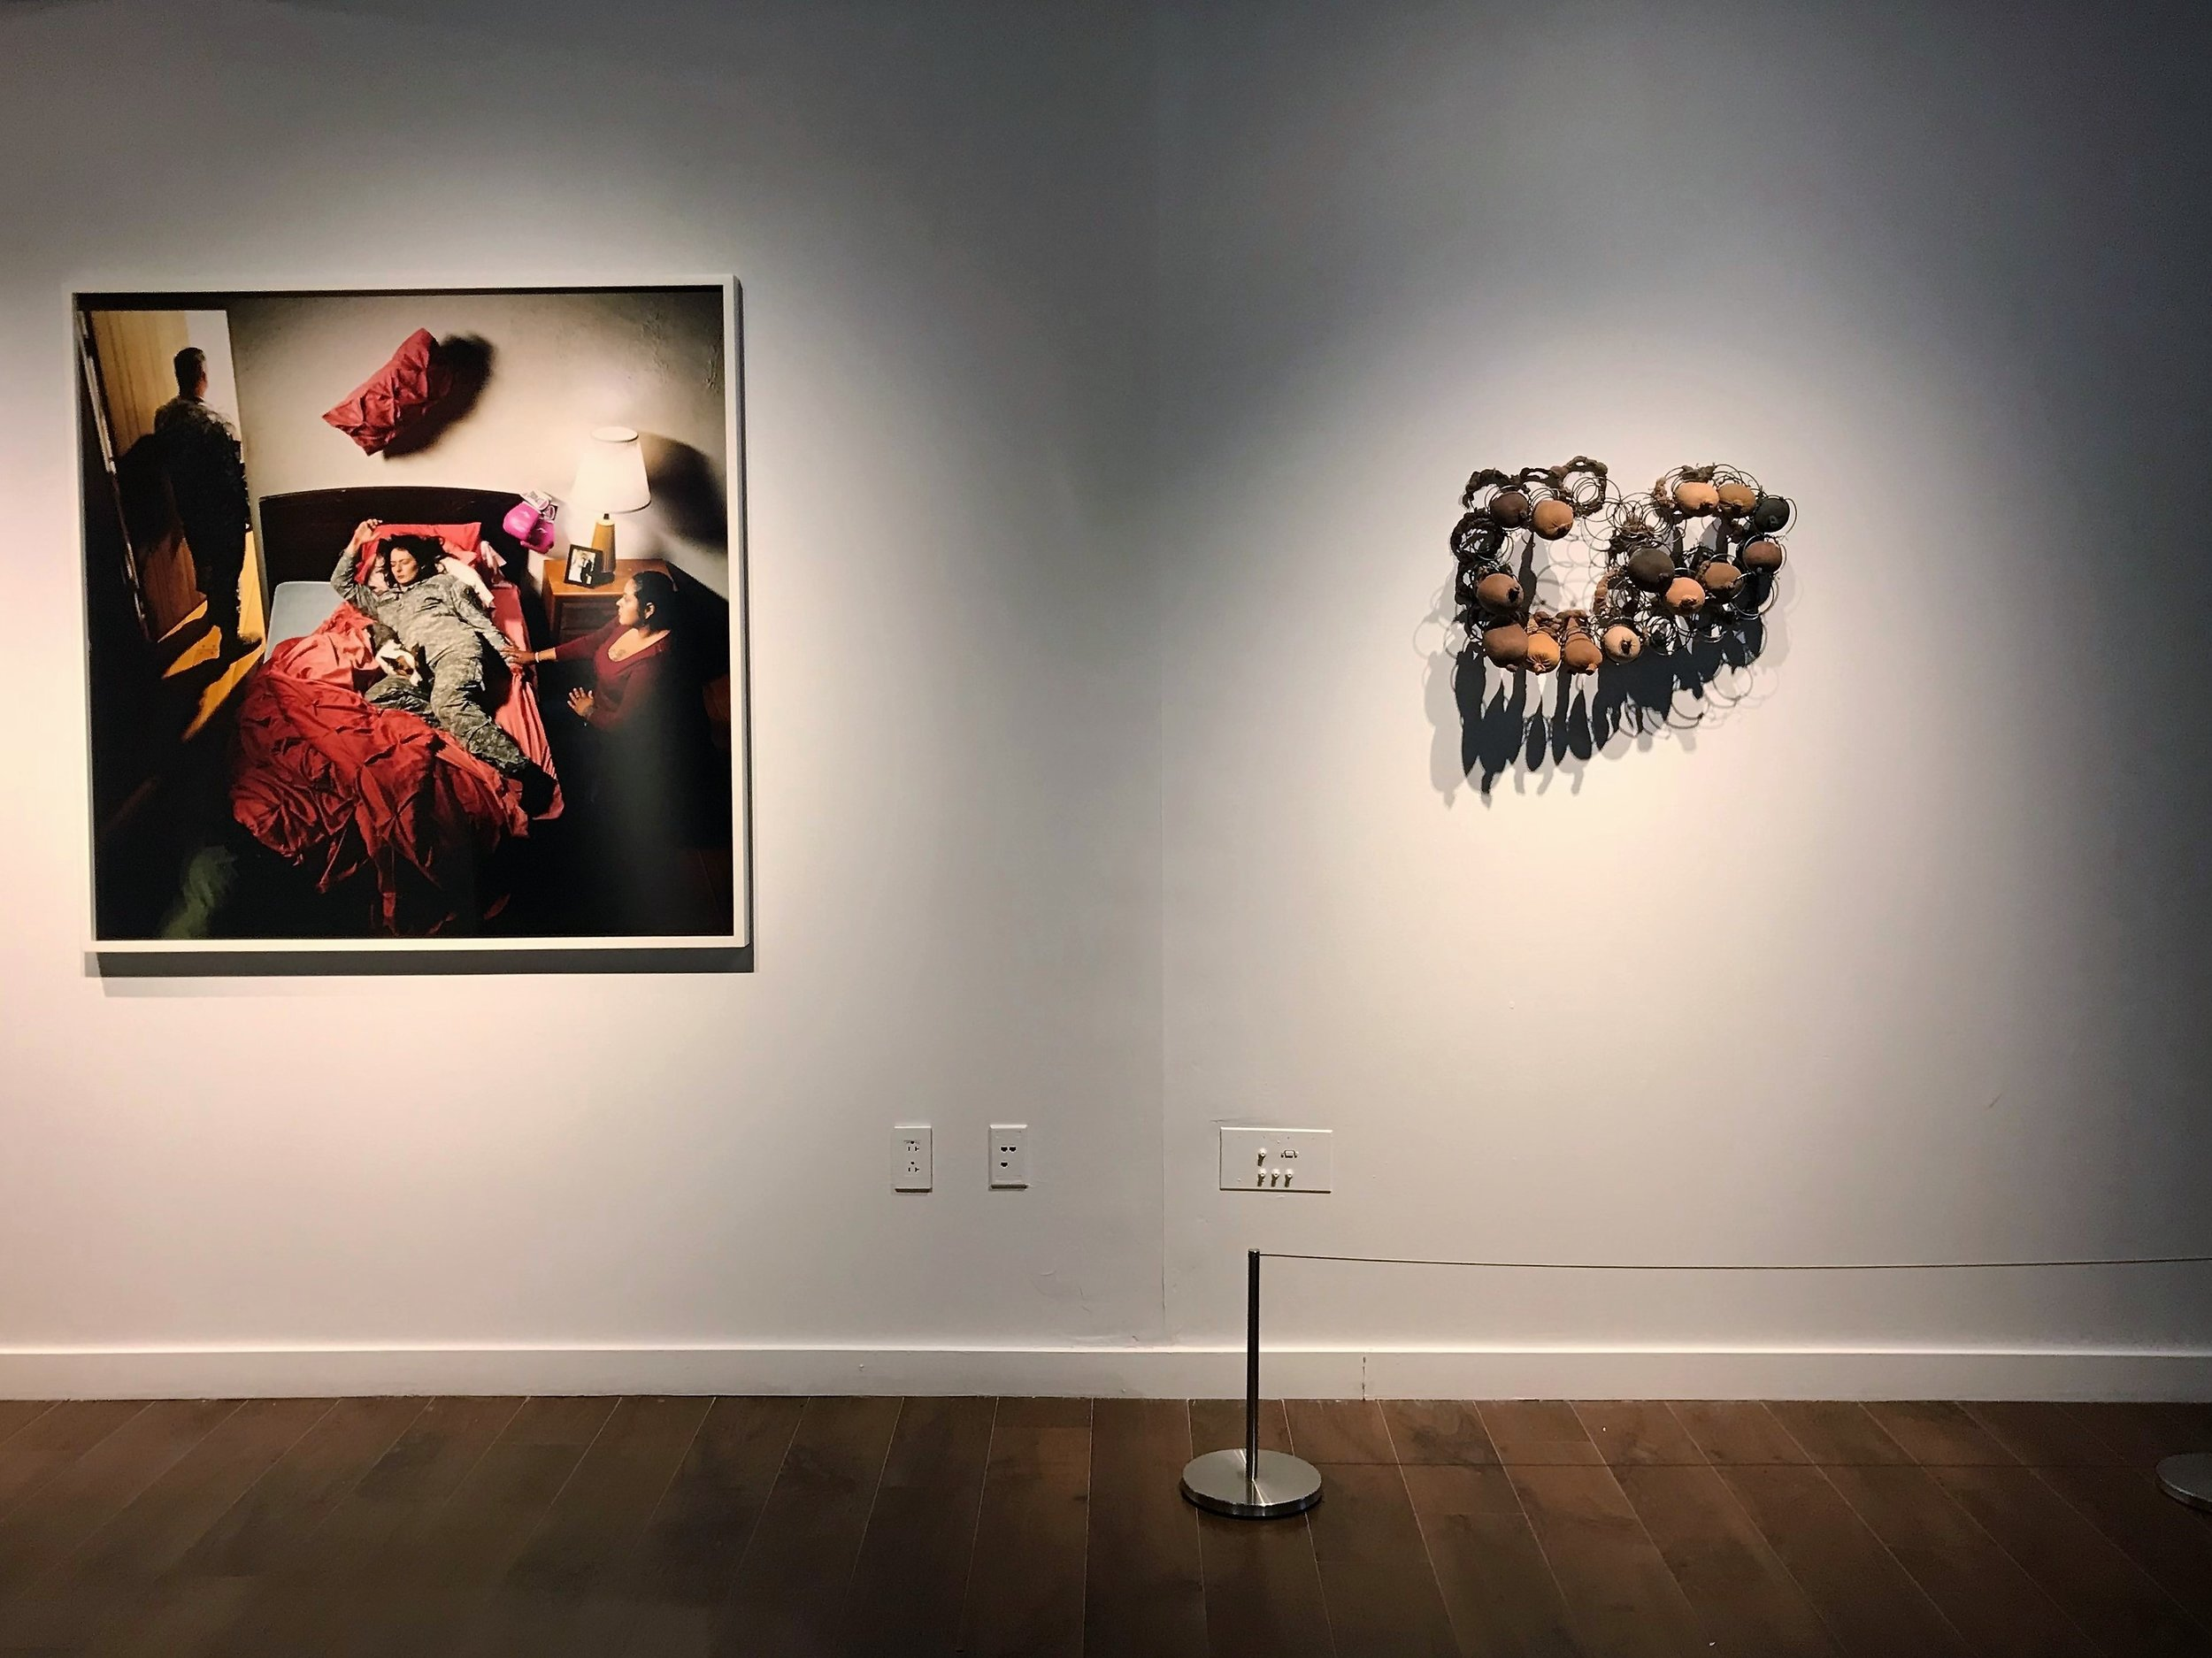 20_Works by Jennifer Karady and Senga Nengudi, installation view, The Un-Heroic Act, Shiva Gallery JJC. Photo Monika Fabijanska